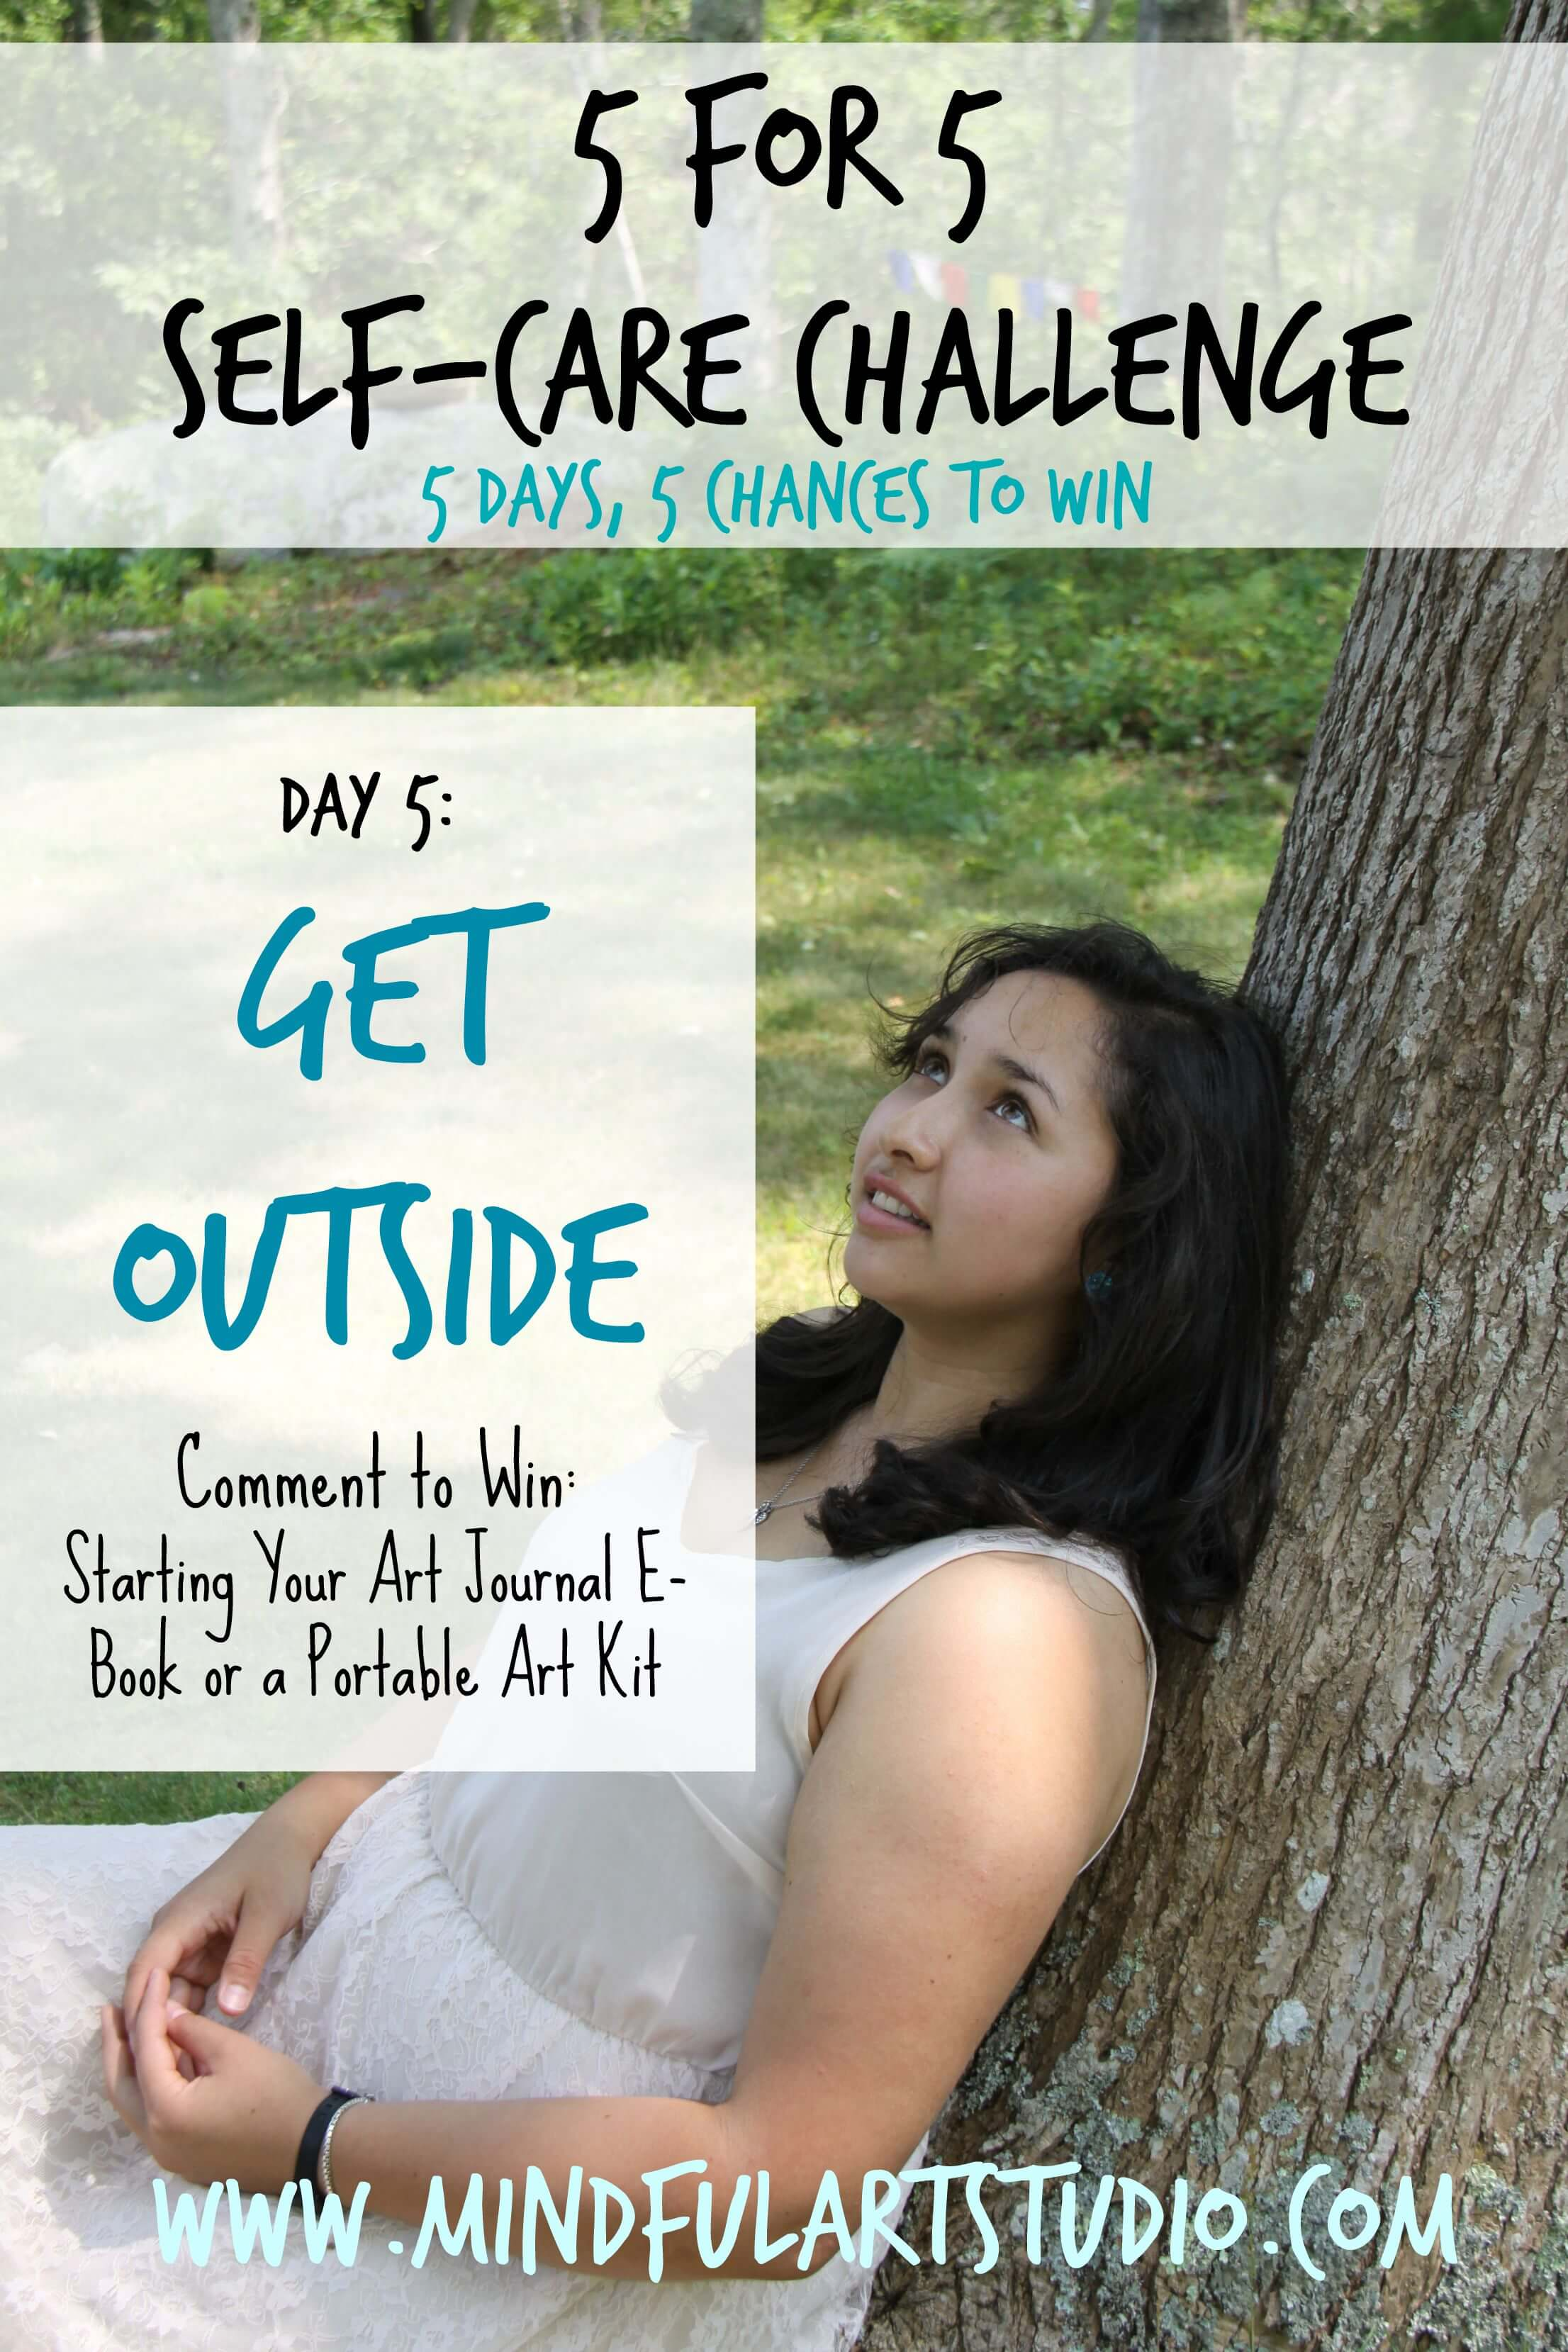 5 for 5 Self-Care Challenge: Get Outside